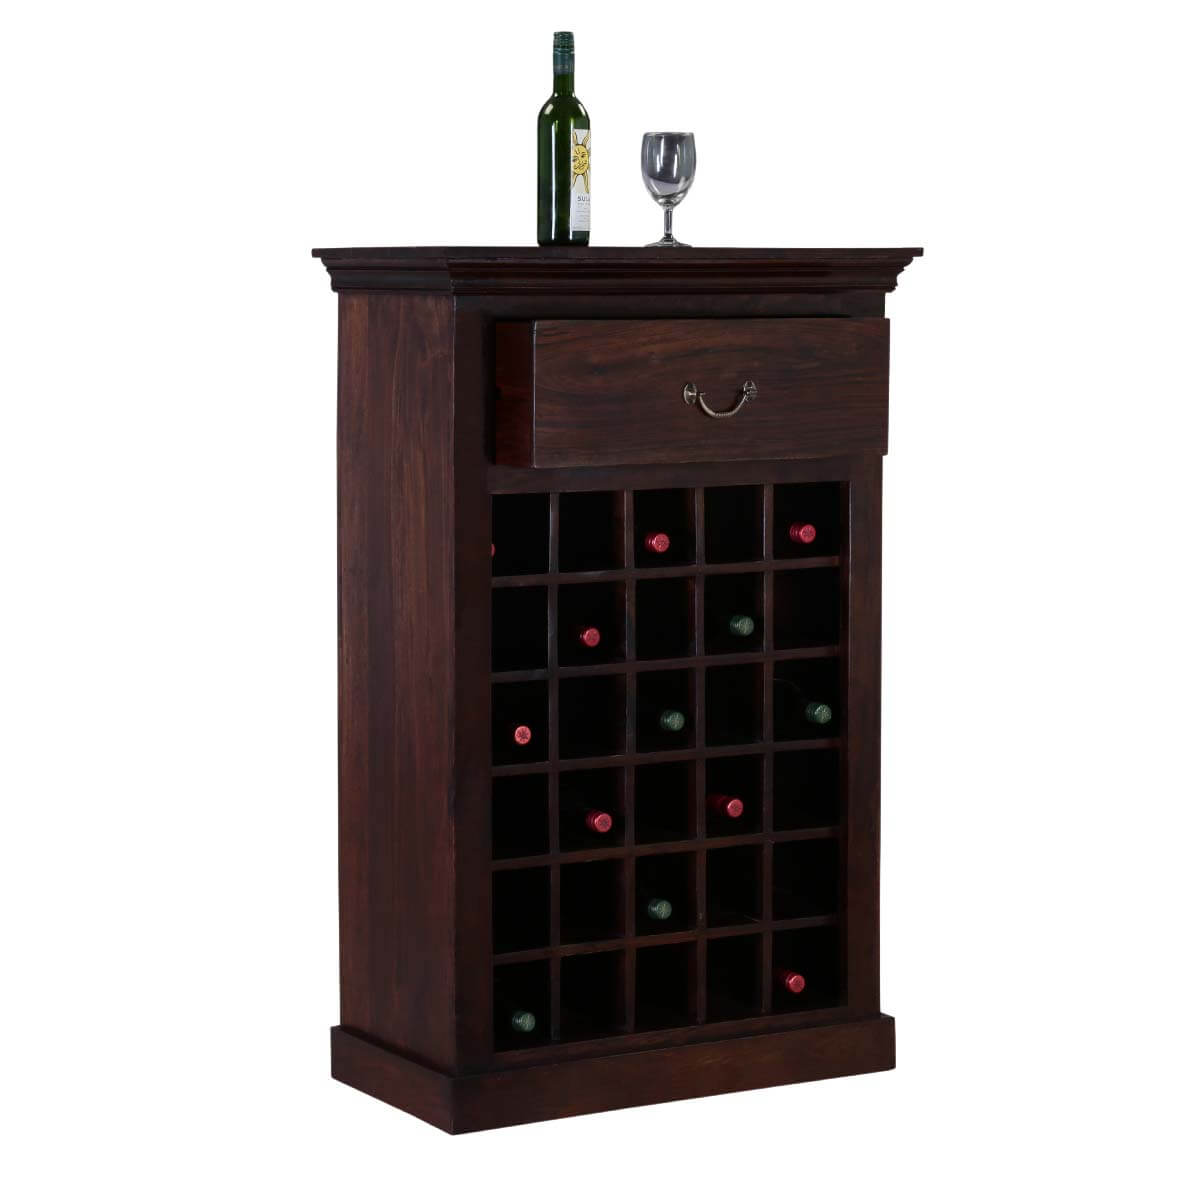 Cecil Rustic Solid Wood 30 Bottle Wine Rack Cabinet